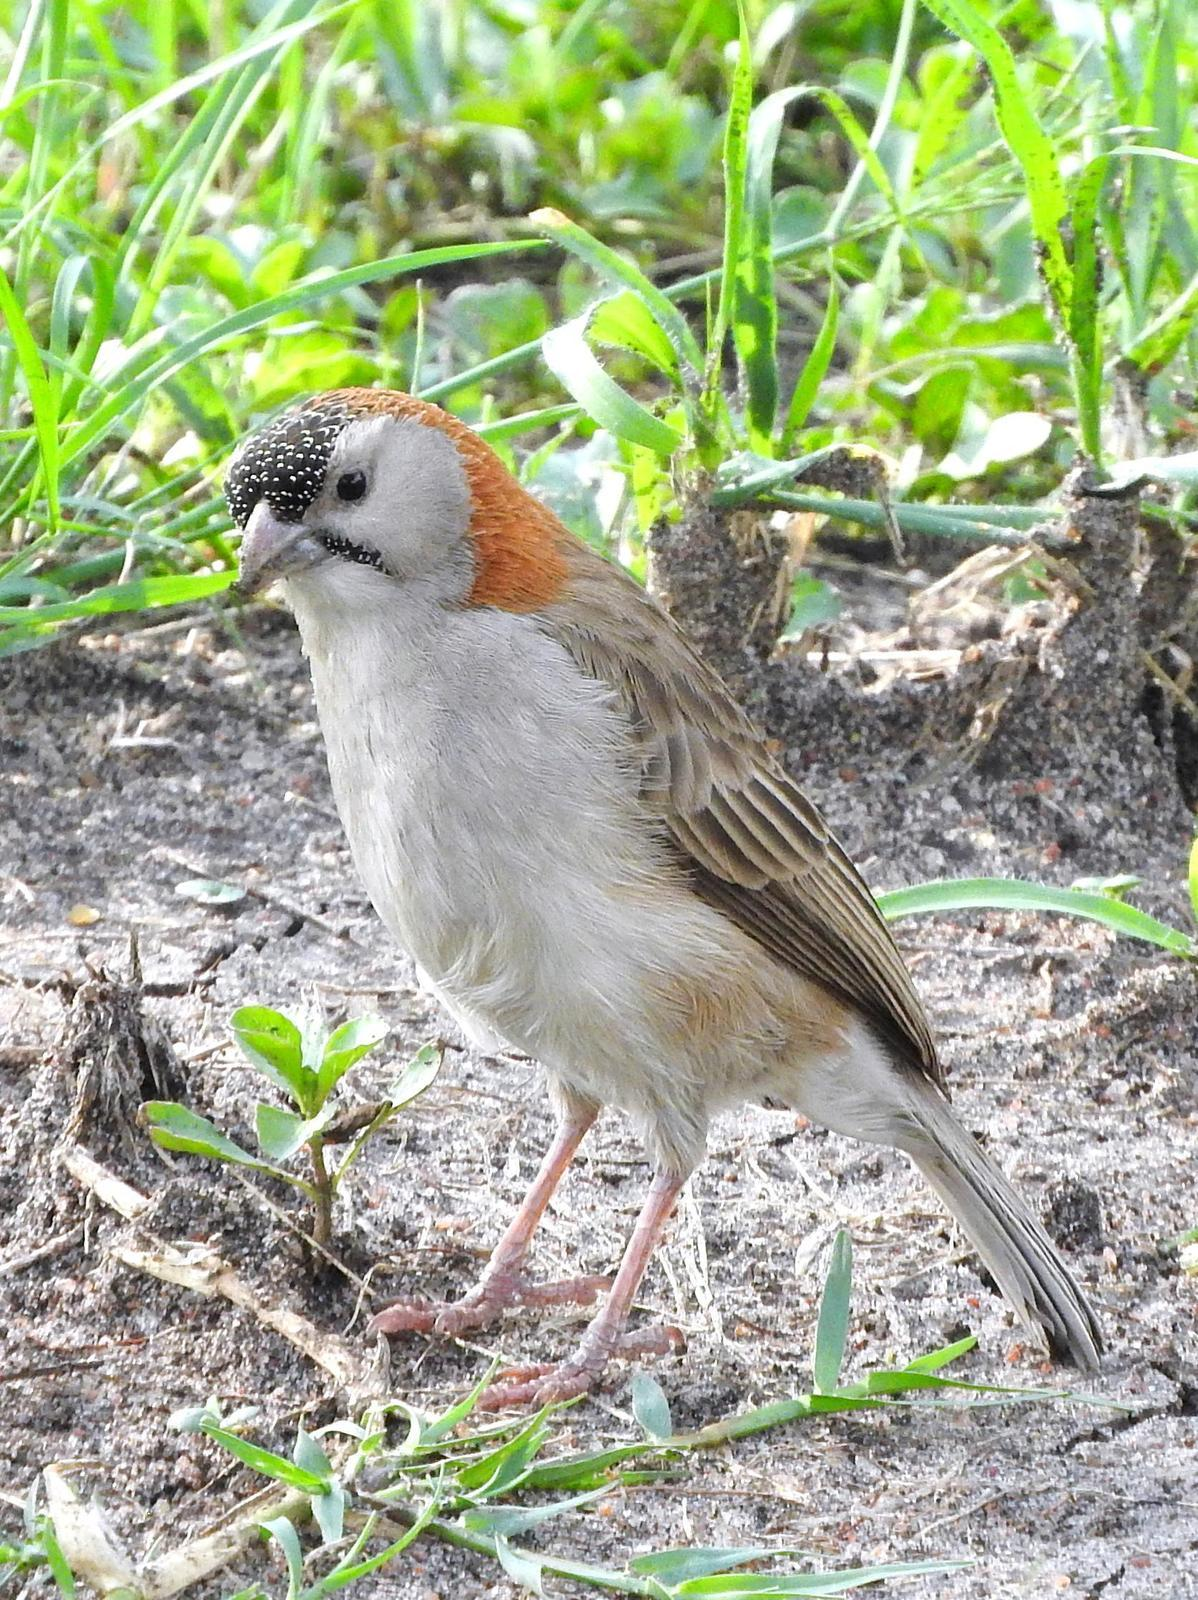 Speckle-fronted Weaver Photo by Todd A. Watkins